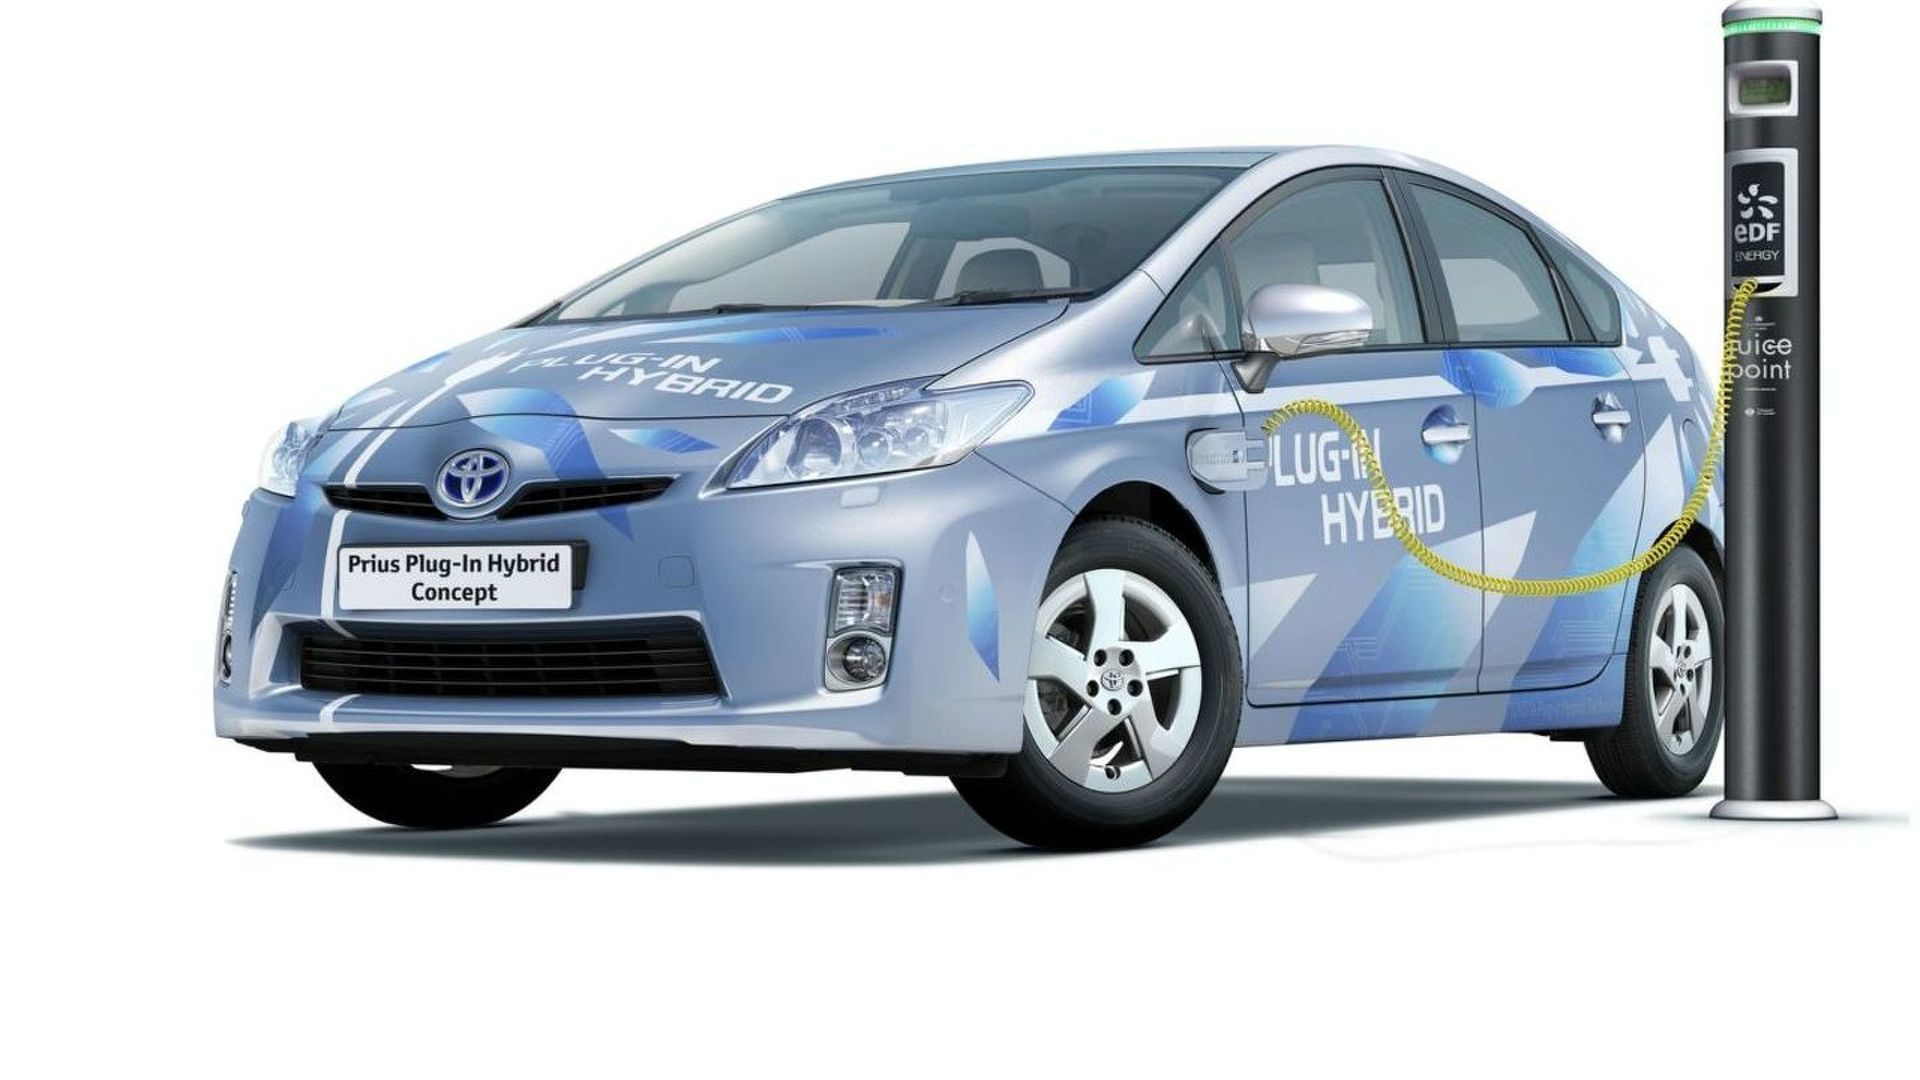 Toyota Prius Plug-in Hybrid Concept Announced - Public reveal in Frankfurt